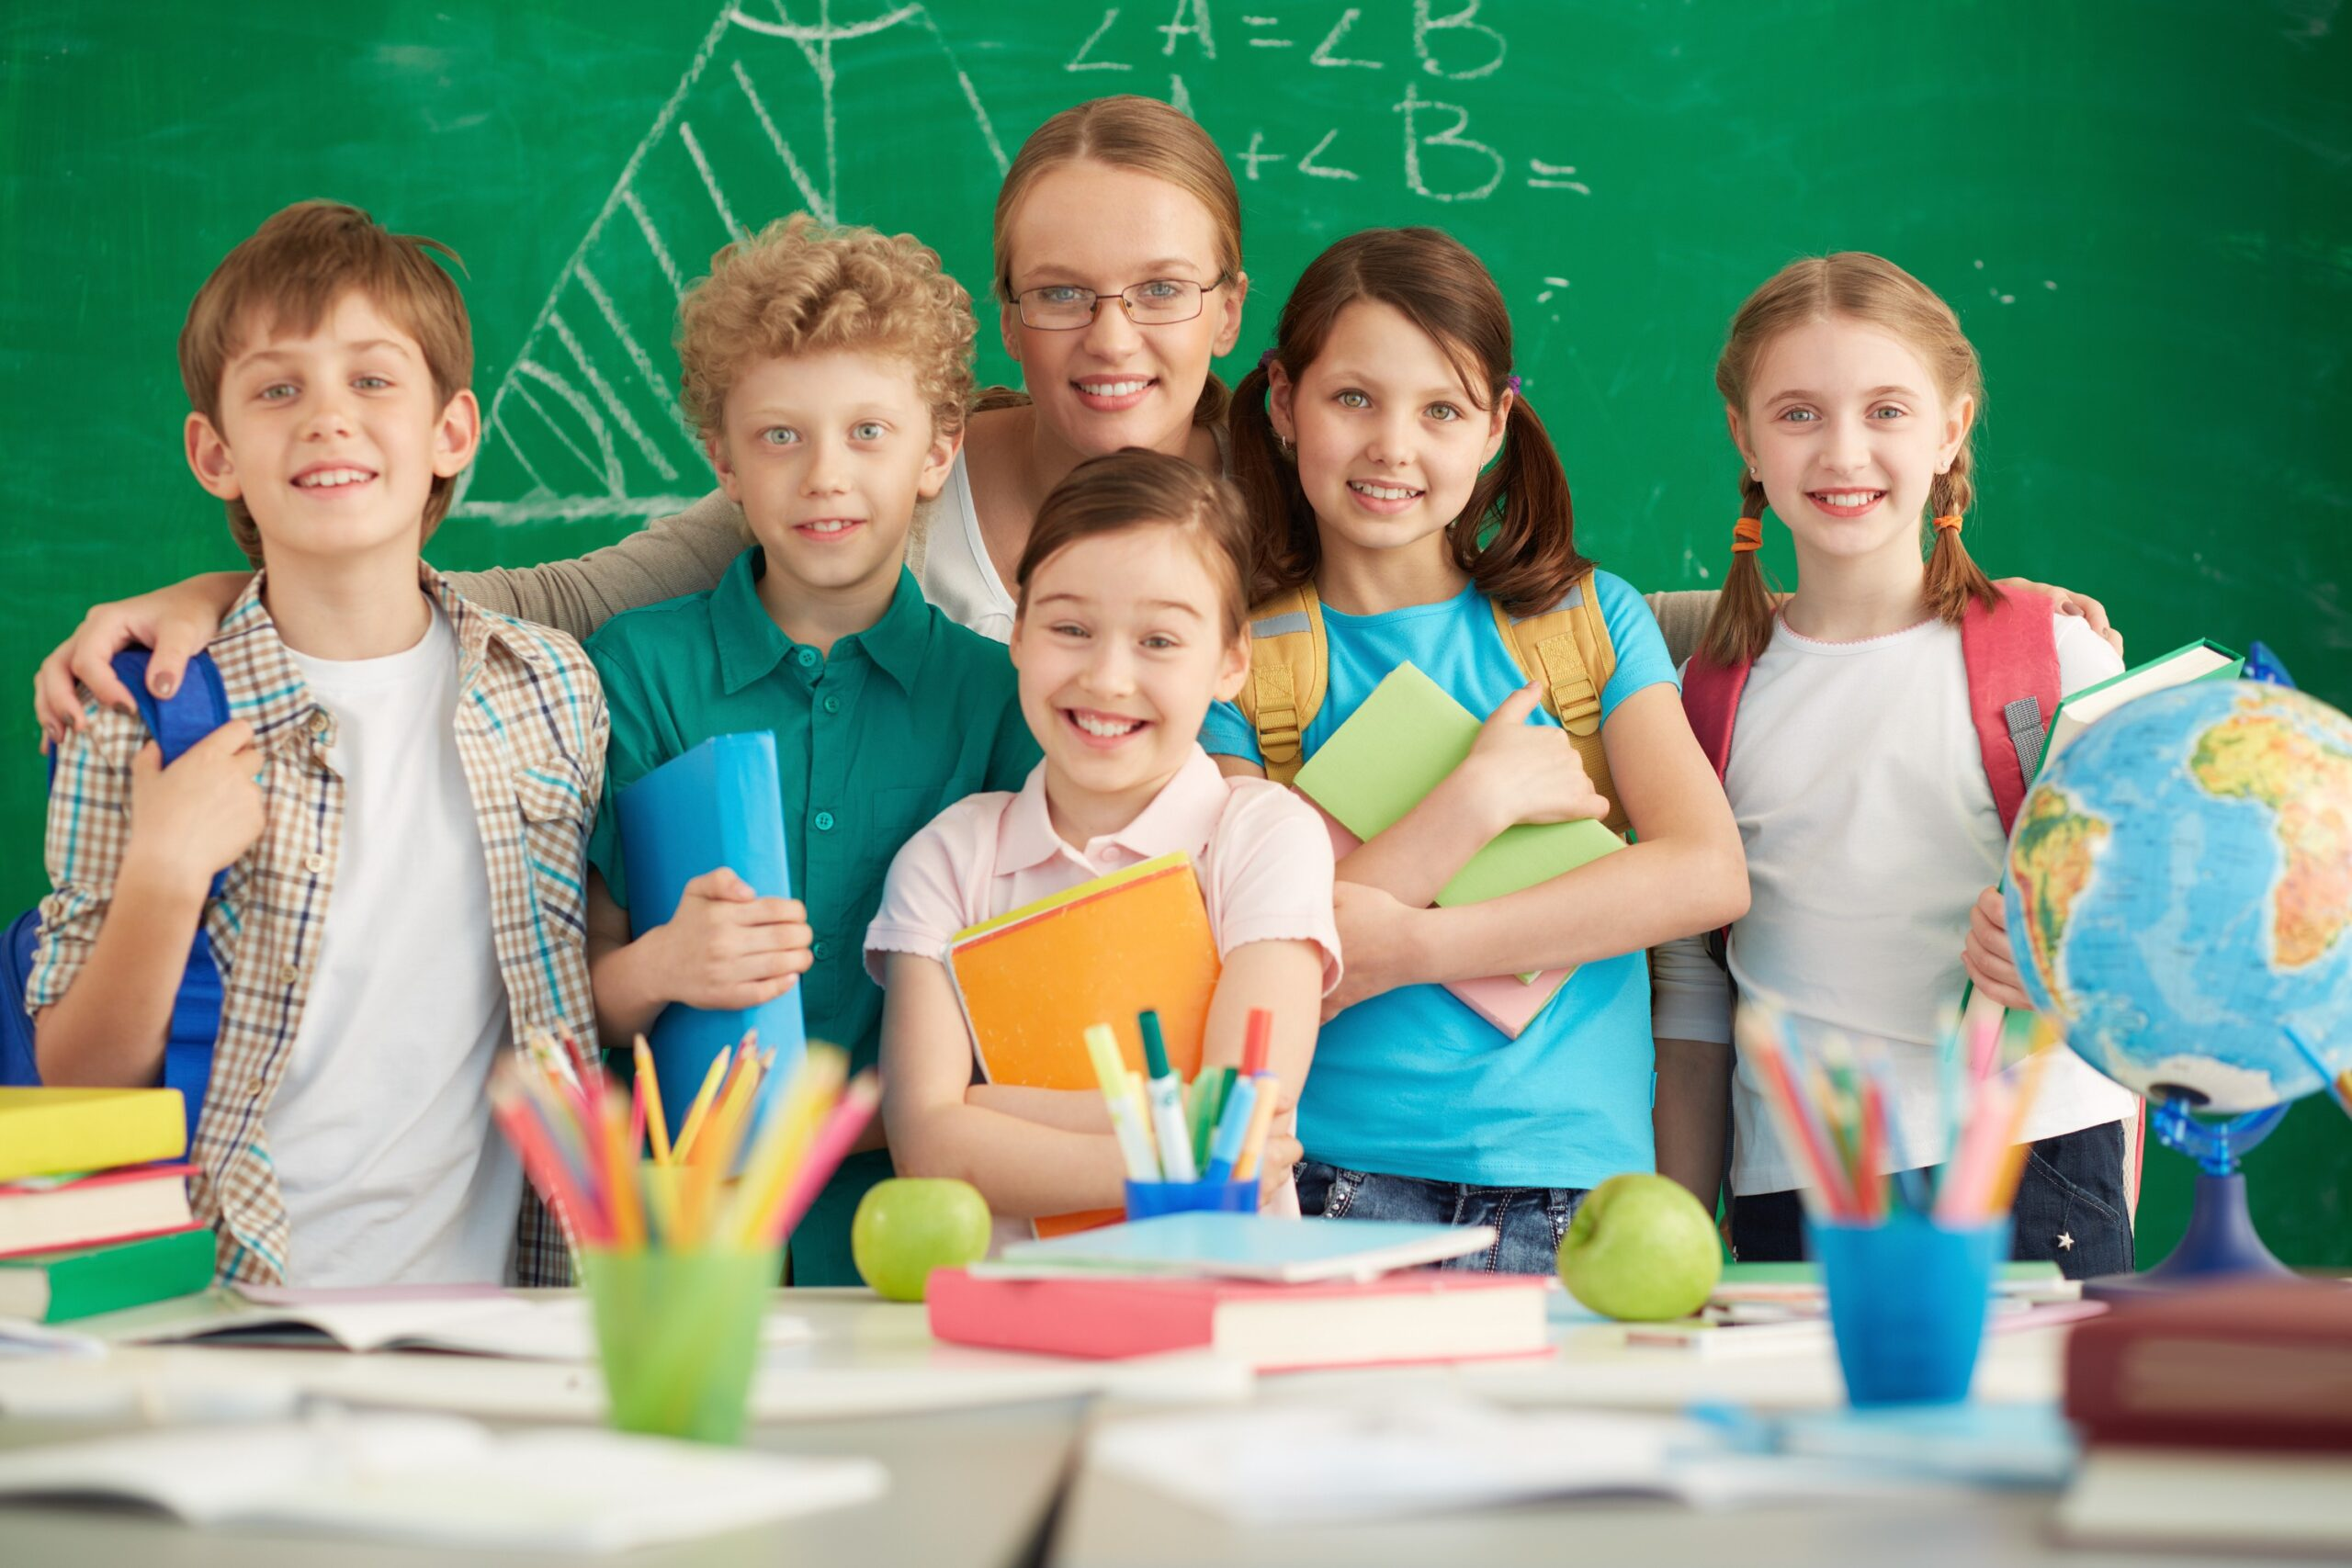 DOES YOUR CHILD  NEED A PRE-SCHOOL ENROLLMENT  HEALTH CHECK?